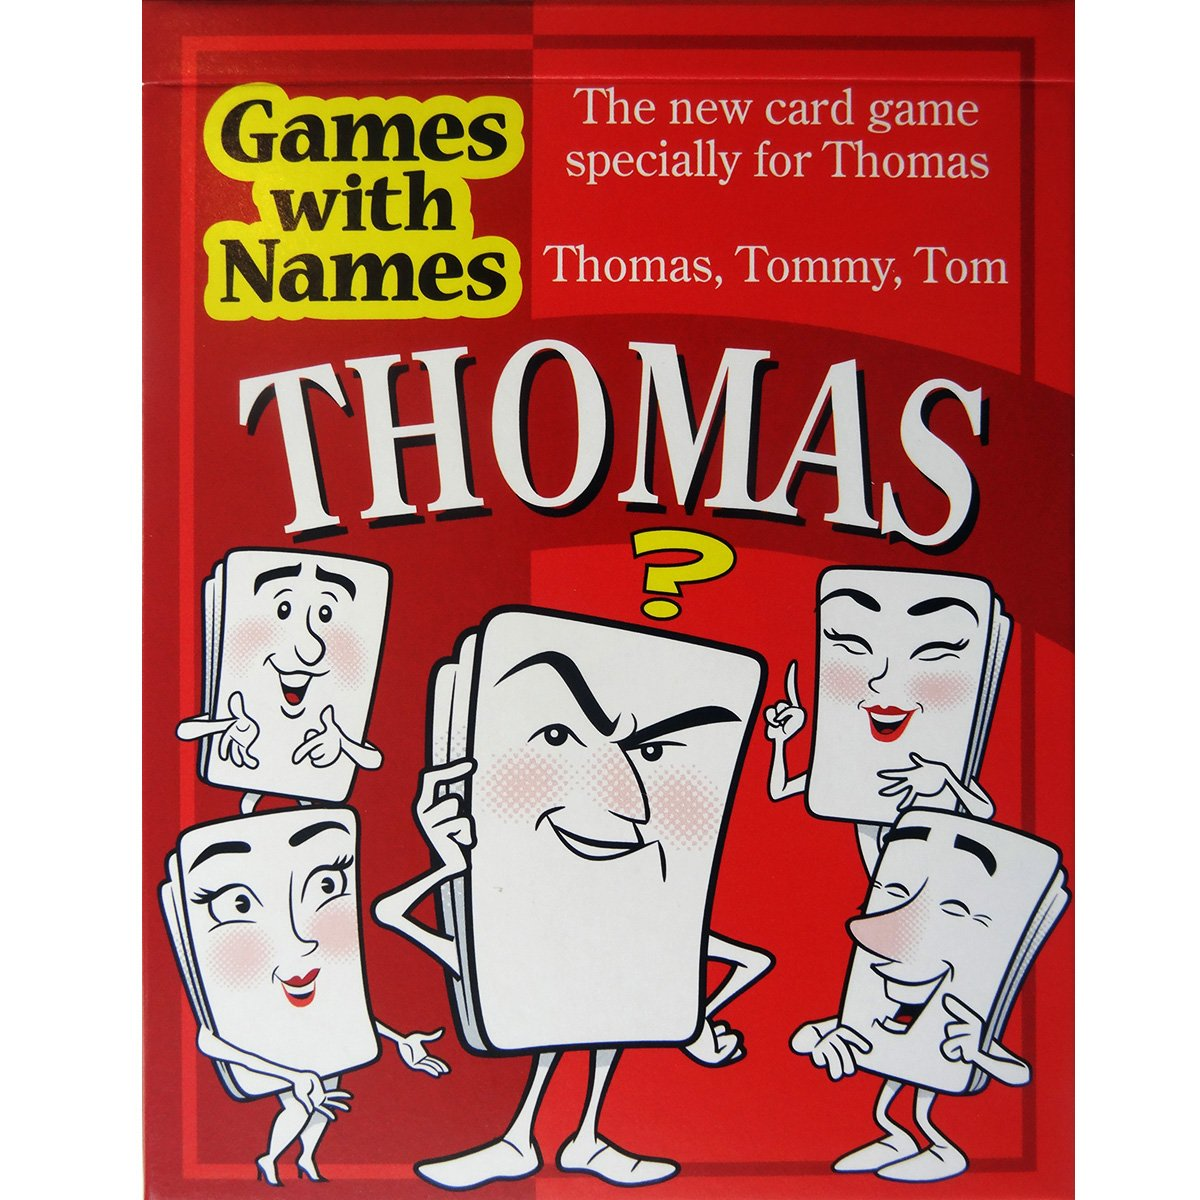 THOMAS'S GAME: Fun boys birthday gift idea for boys called THOMAS, TOMMY and TOM (also makes a great secret santa item or stocking stuffer or Christmas present!).